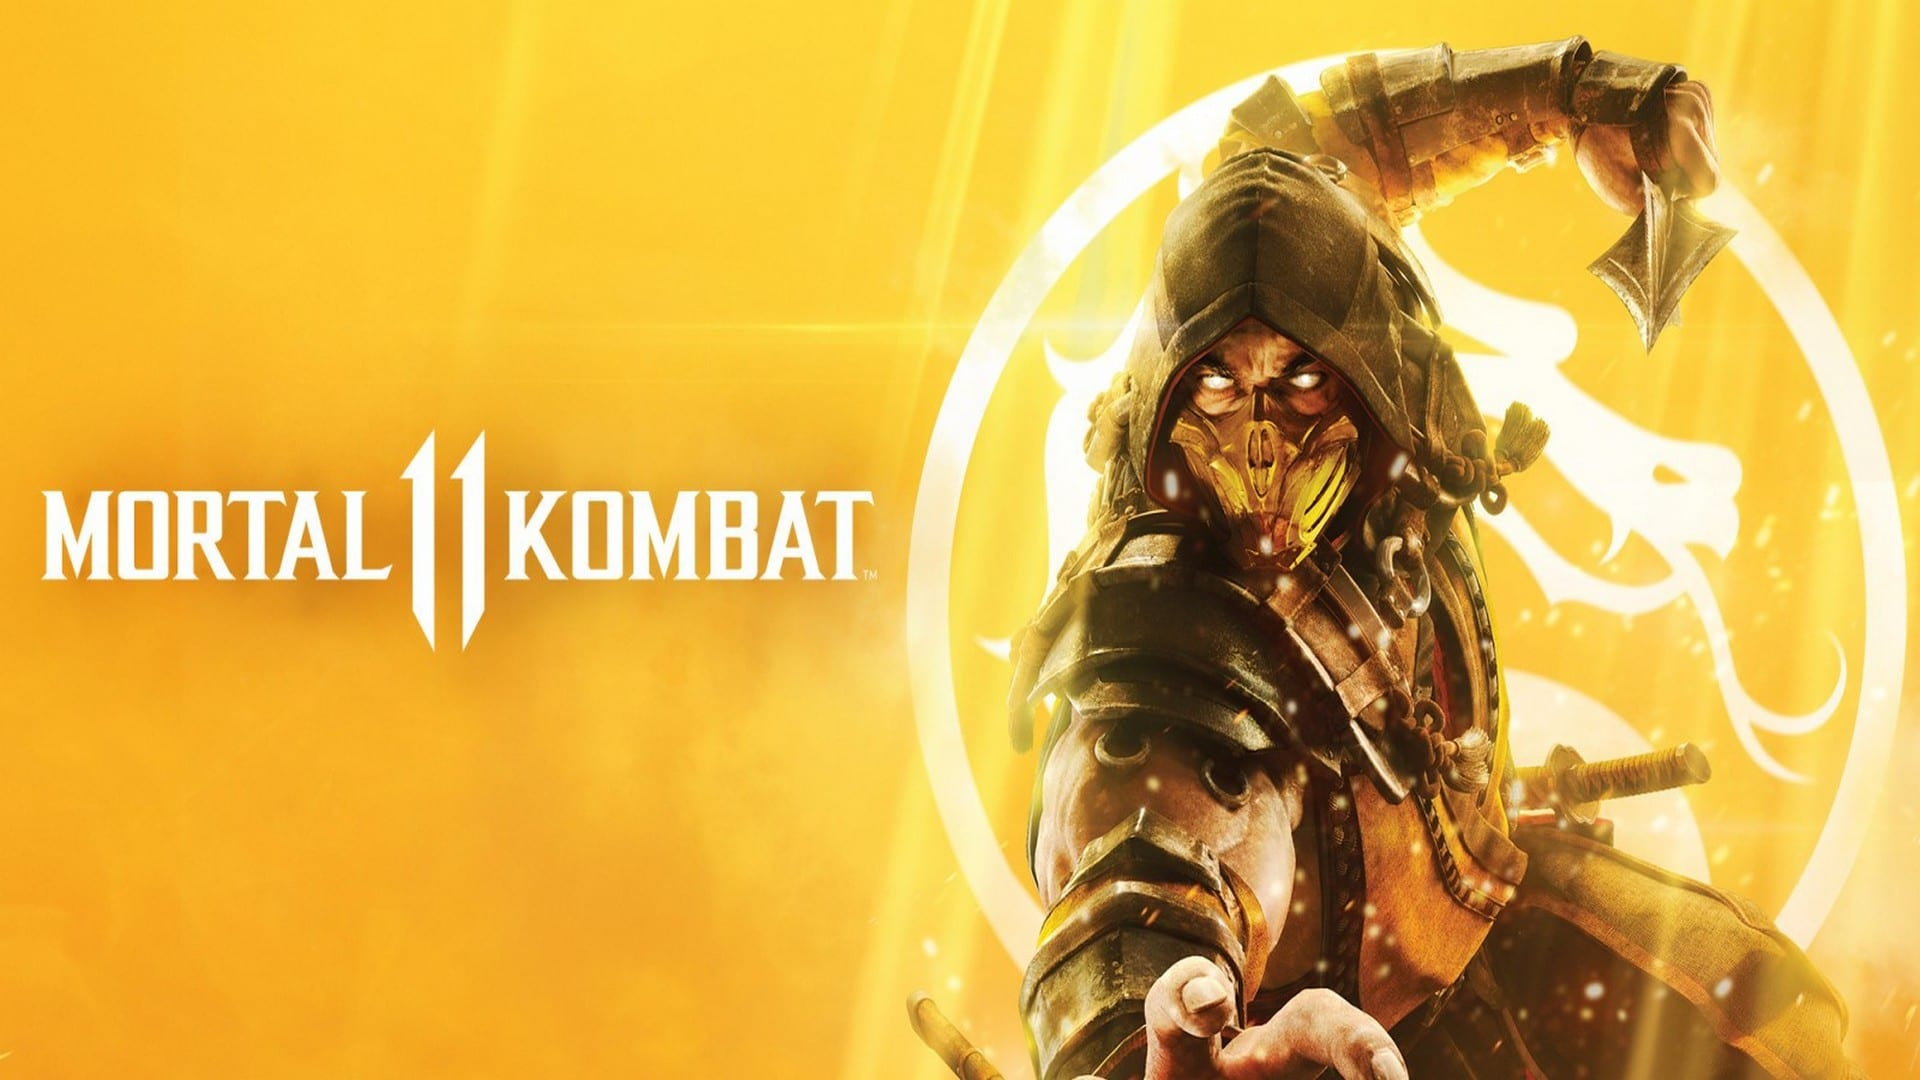 Mortal Kombat 11 Celebrates St. Patrick's Day With Free In-Game Event (March 15-19)